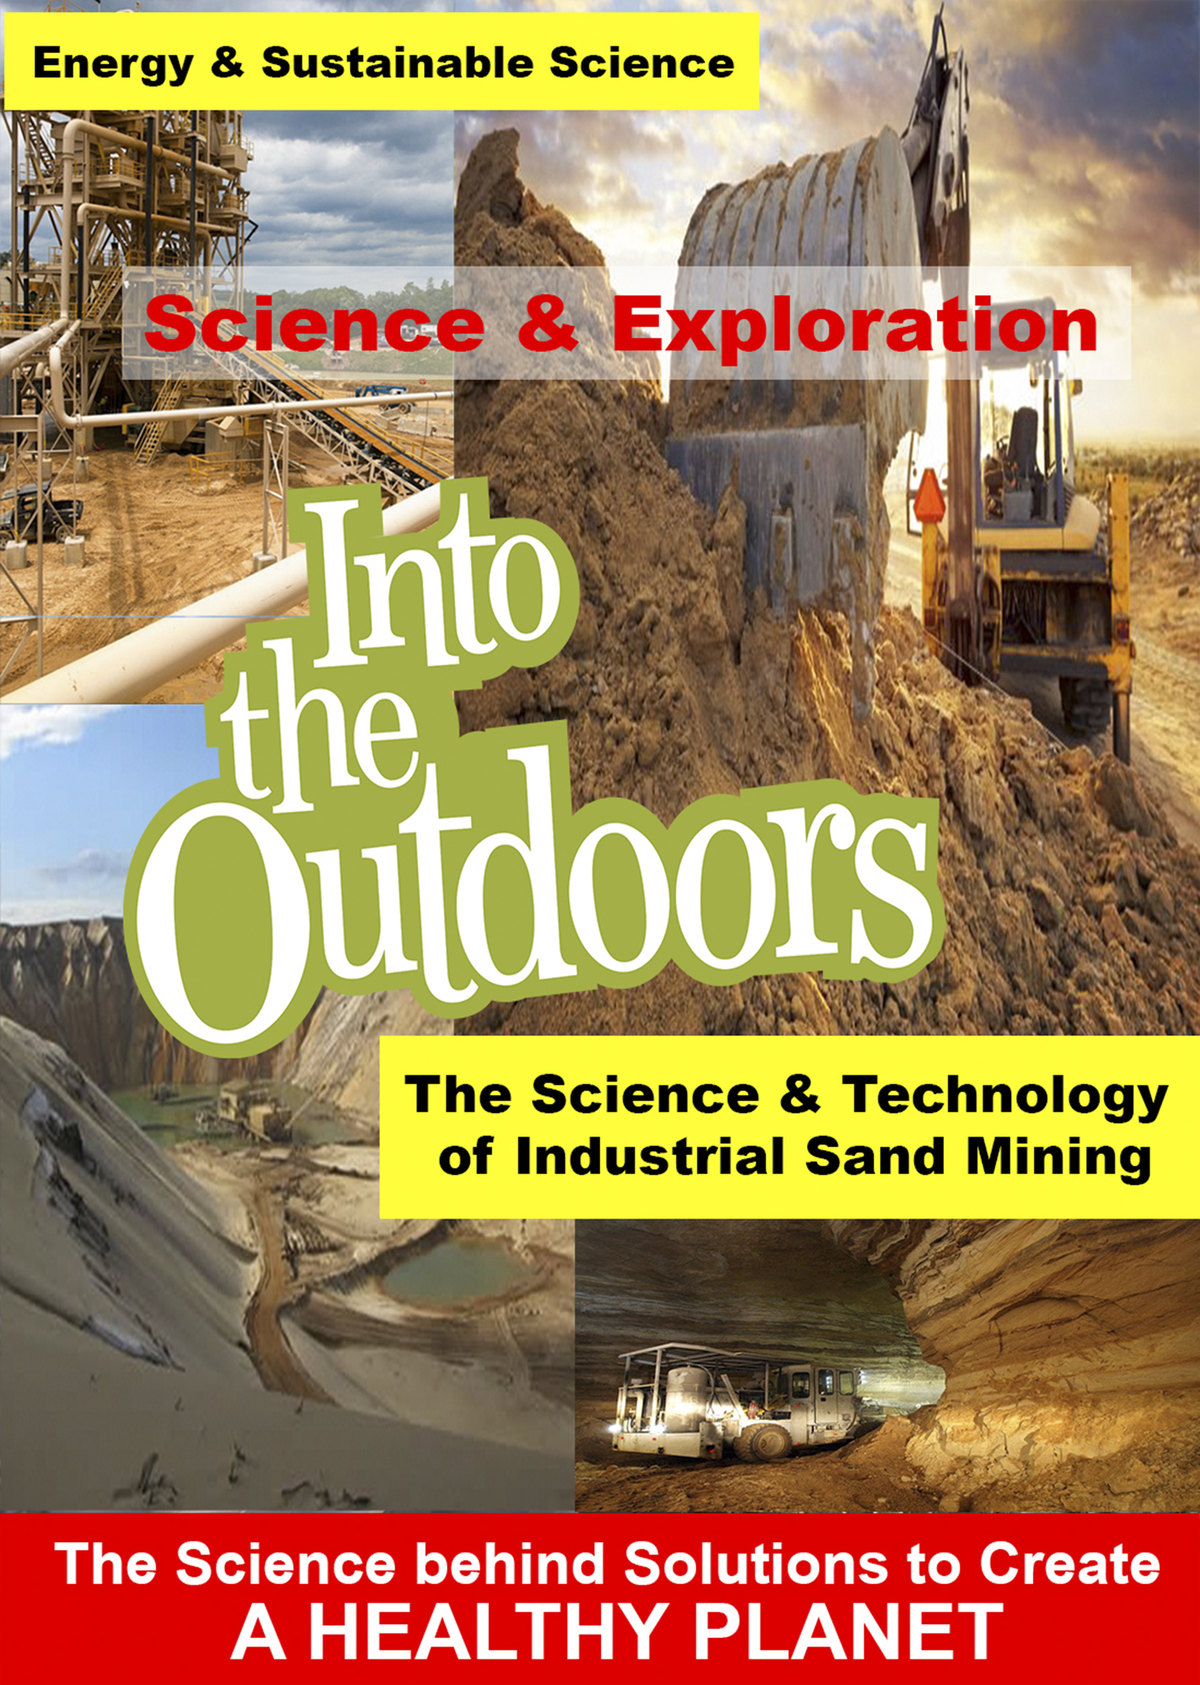 K4978 - The Science & Technology of Industrial Sand Mining